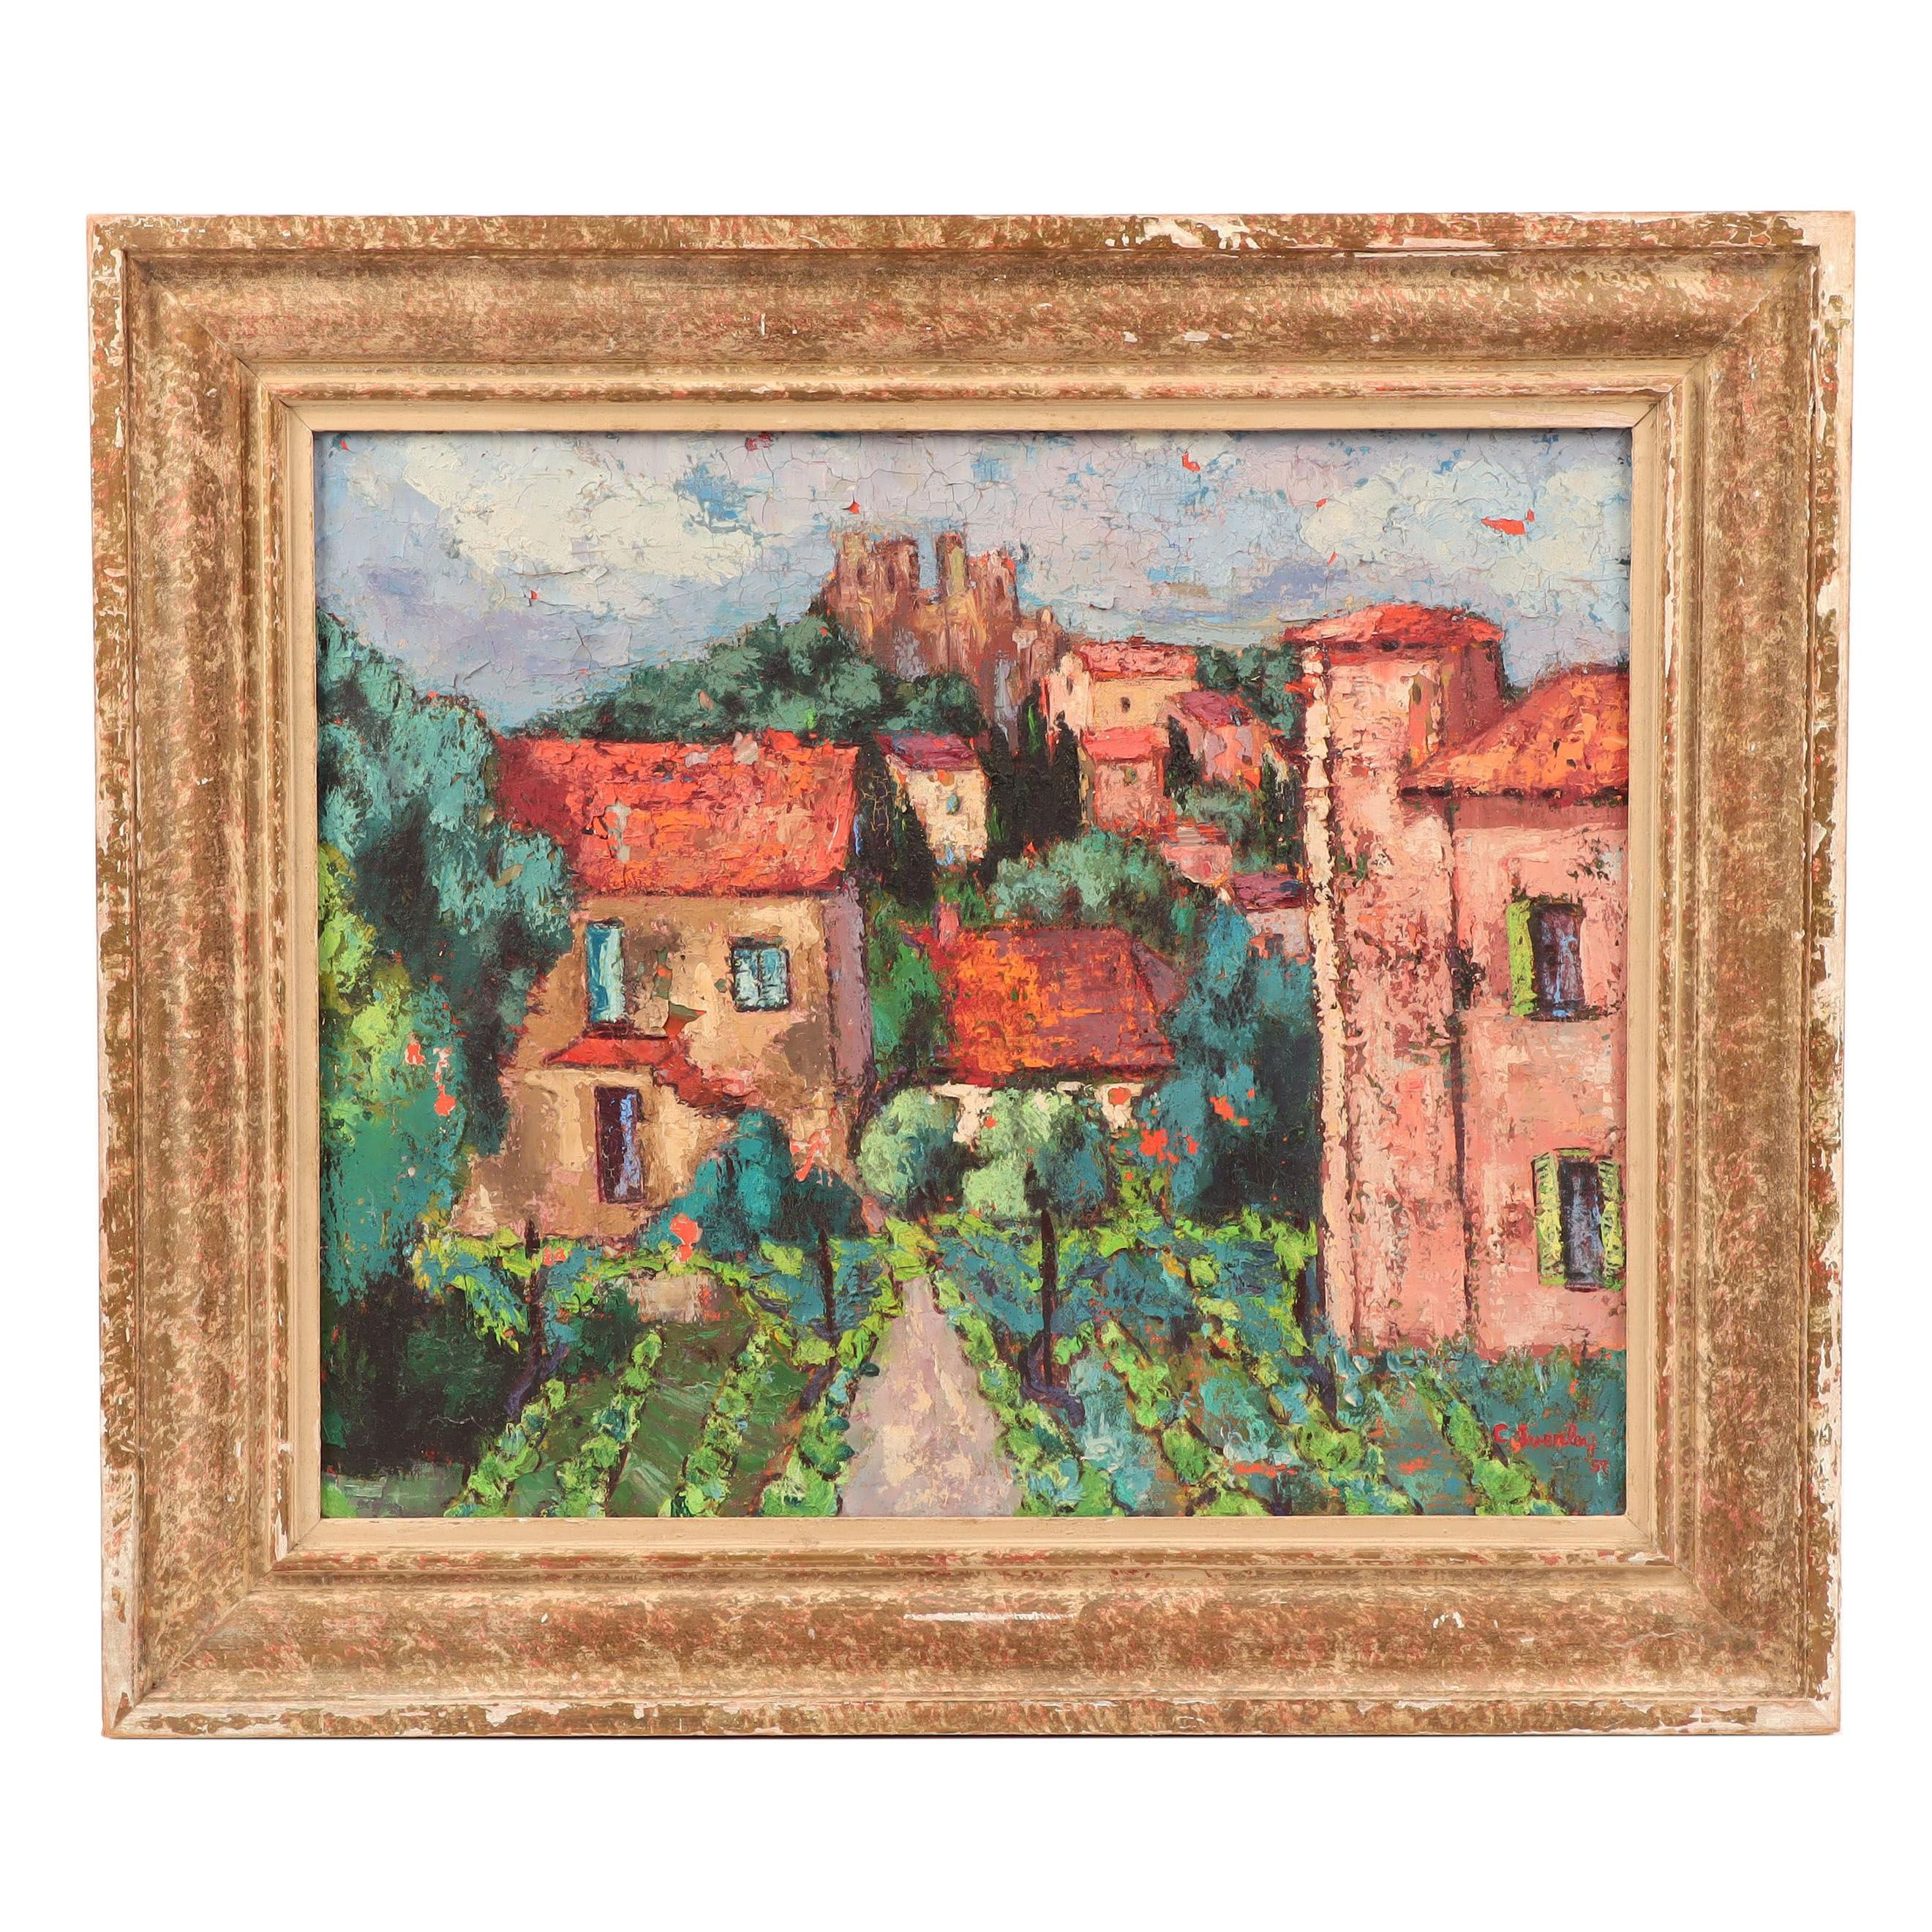 C. Everly Oil Painting of Village Scene